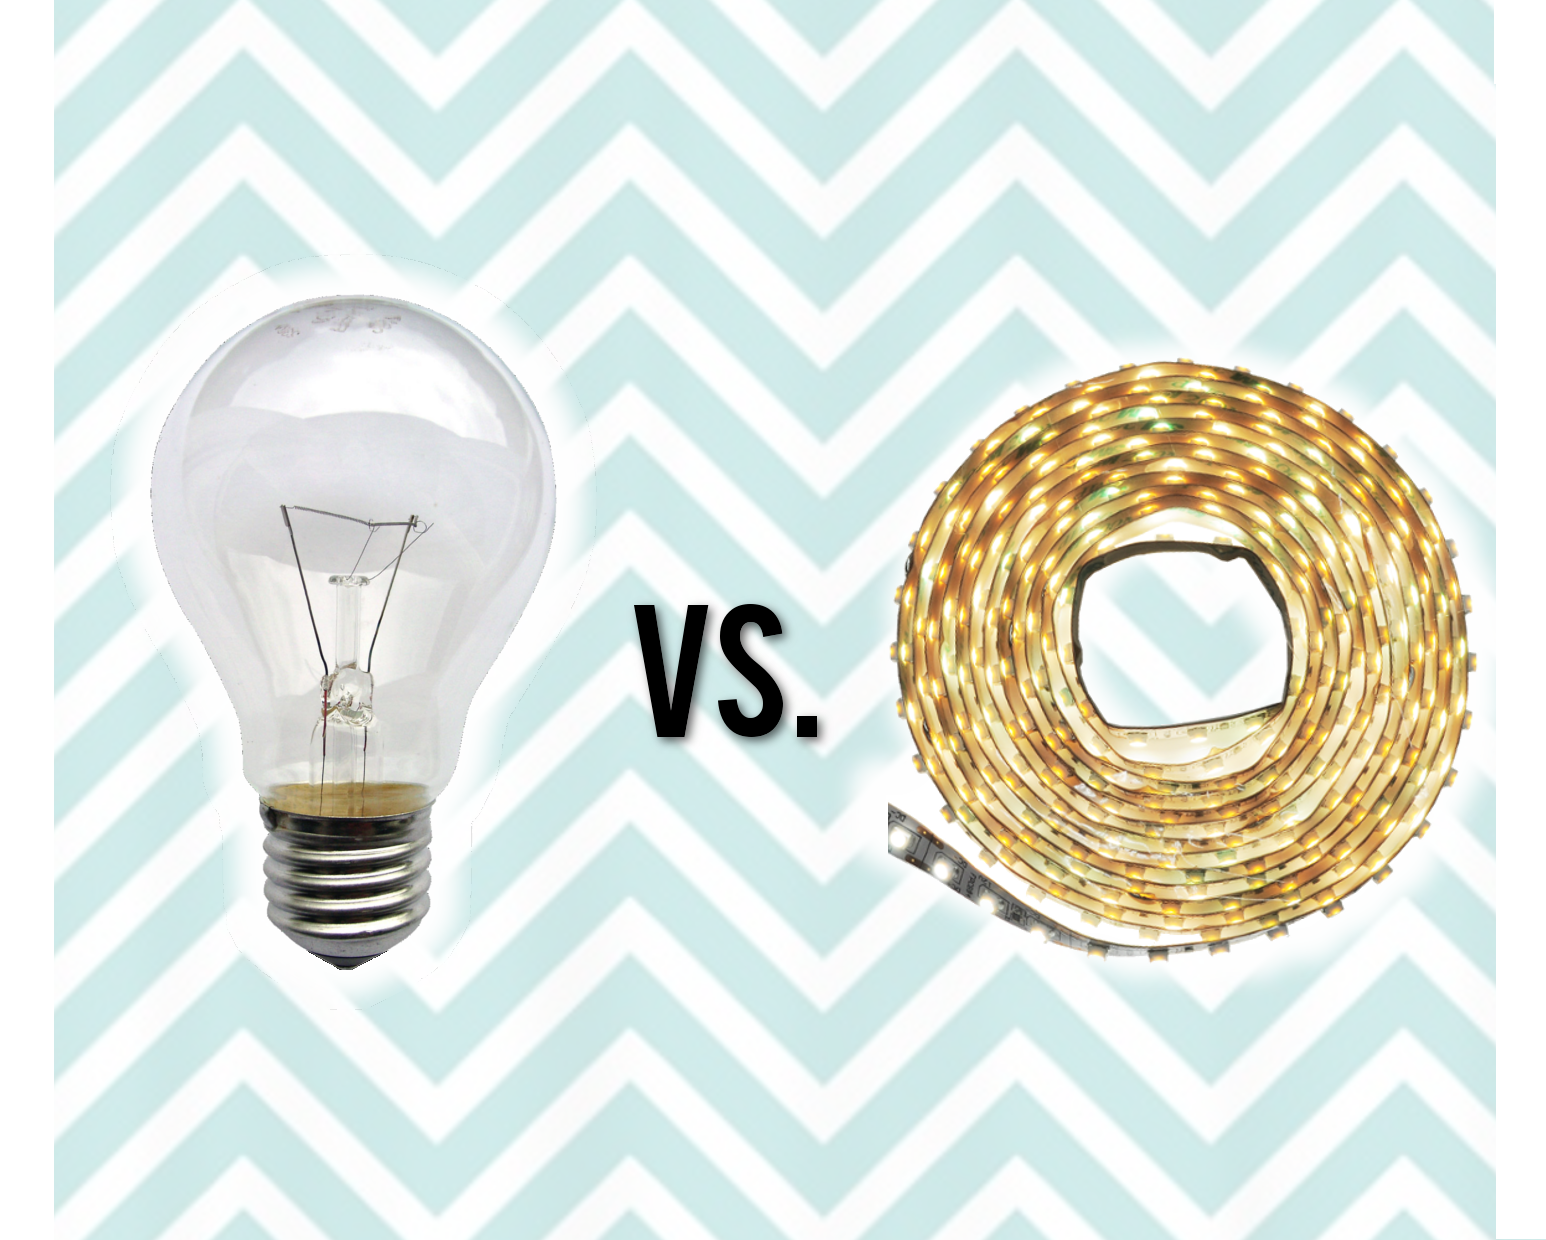 LED lights versus incandescent light bulb watts